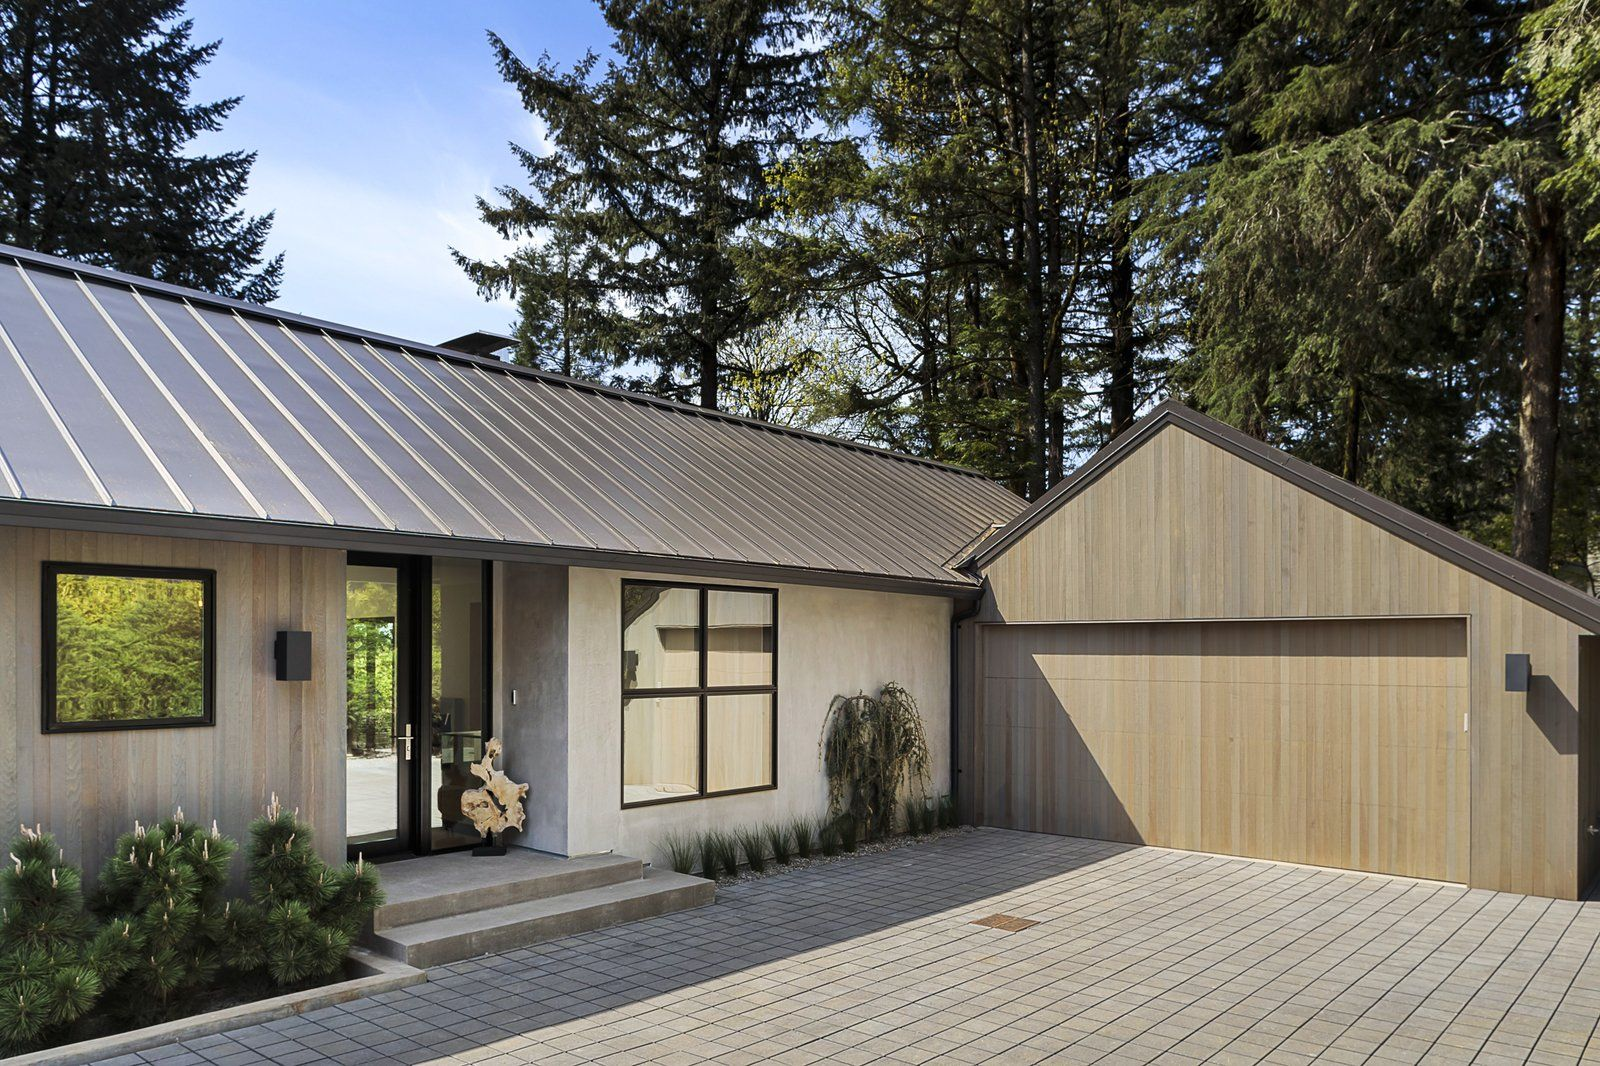 Exterior Concrete Siding Material Metal Roof Material House